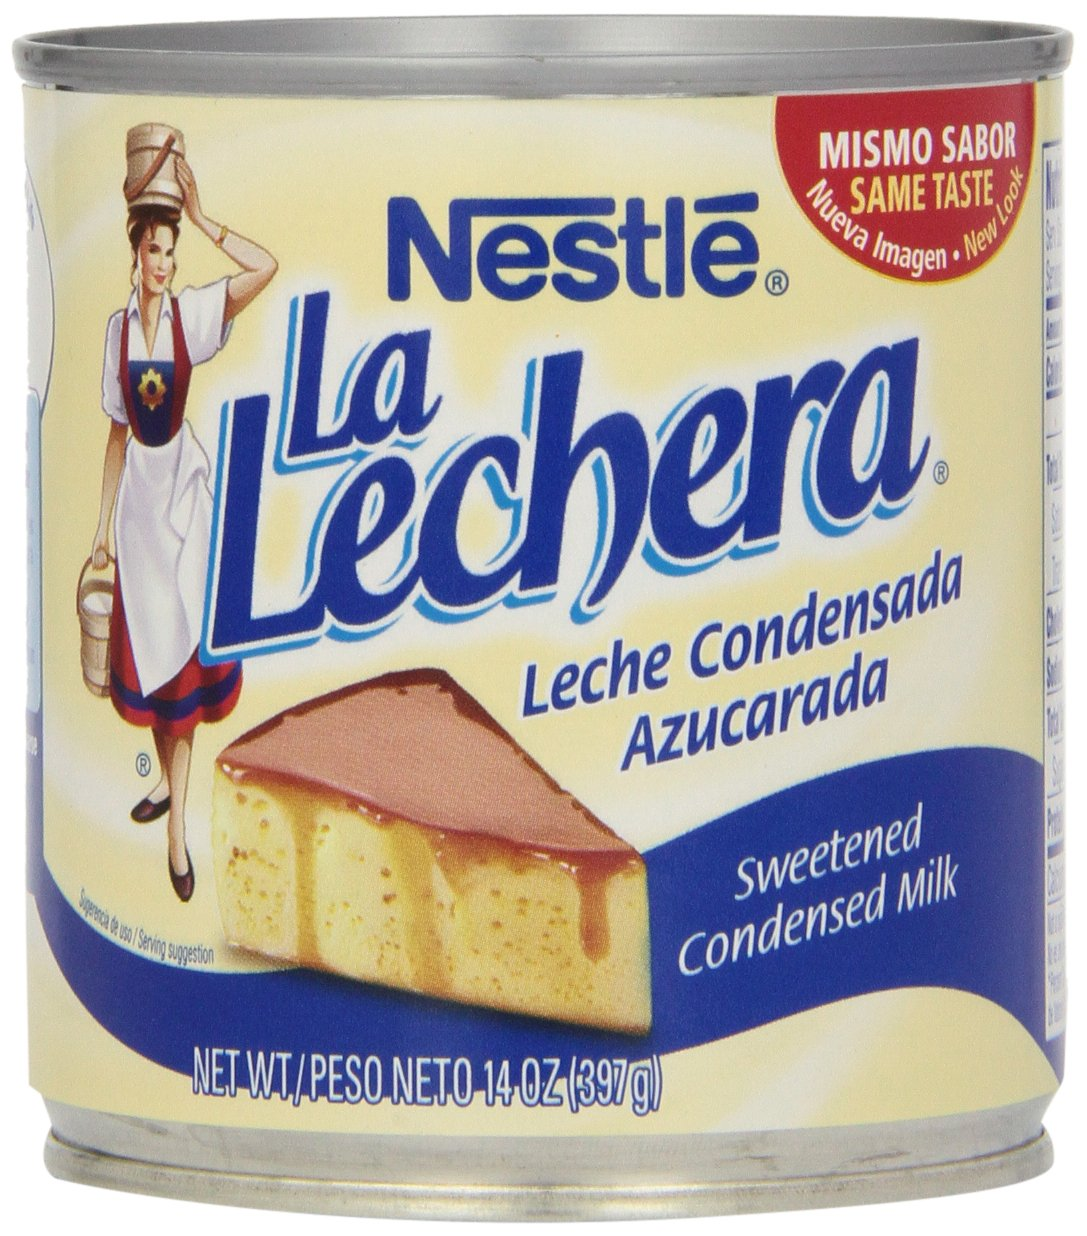 La Lechera Sweetened Condensed Milk, 14 Oz: Amazon.es: Alimentación y bebidas